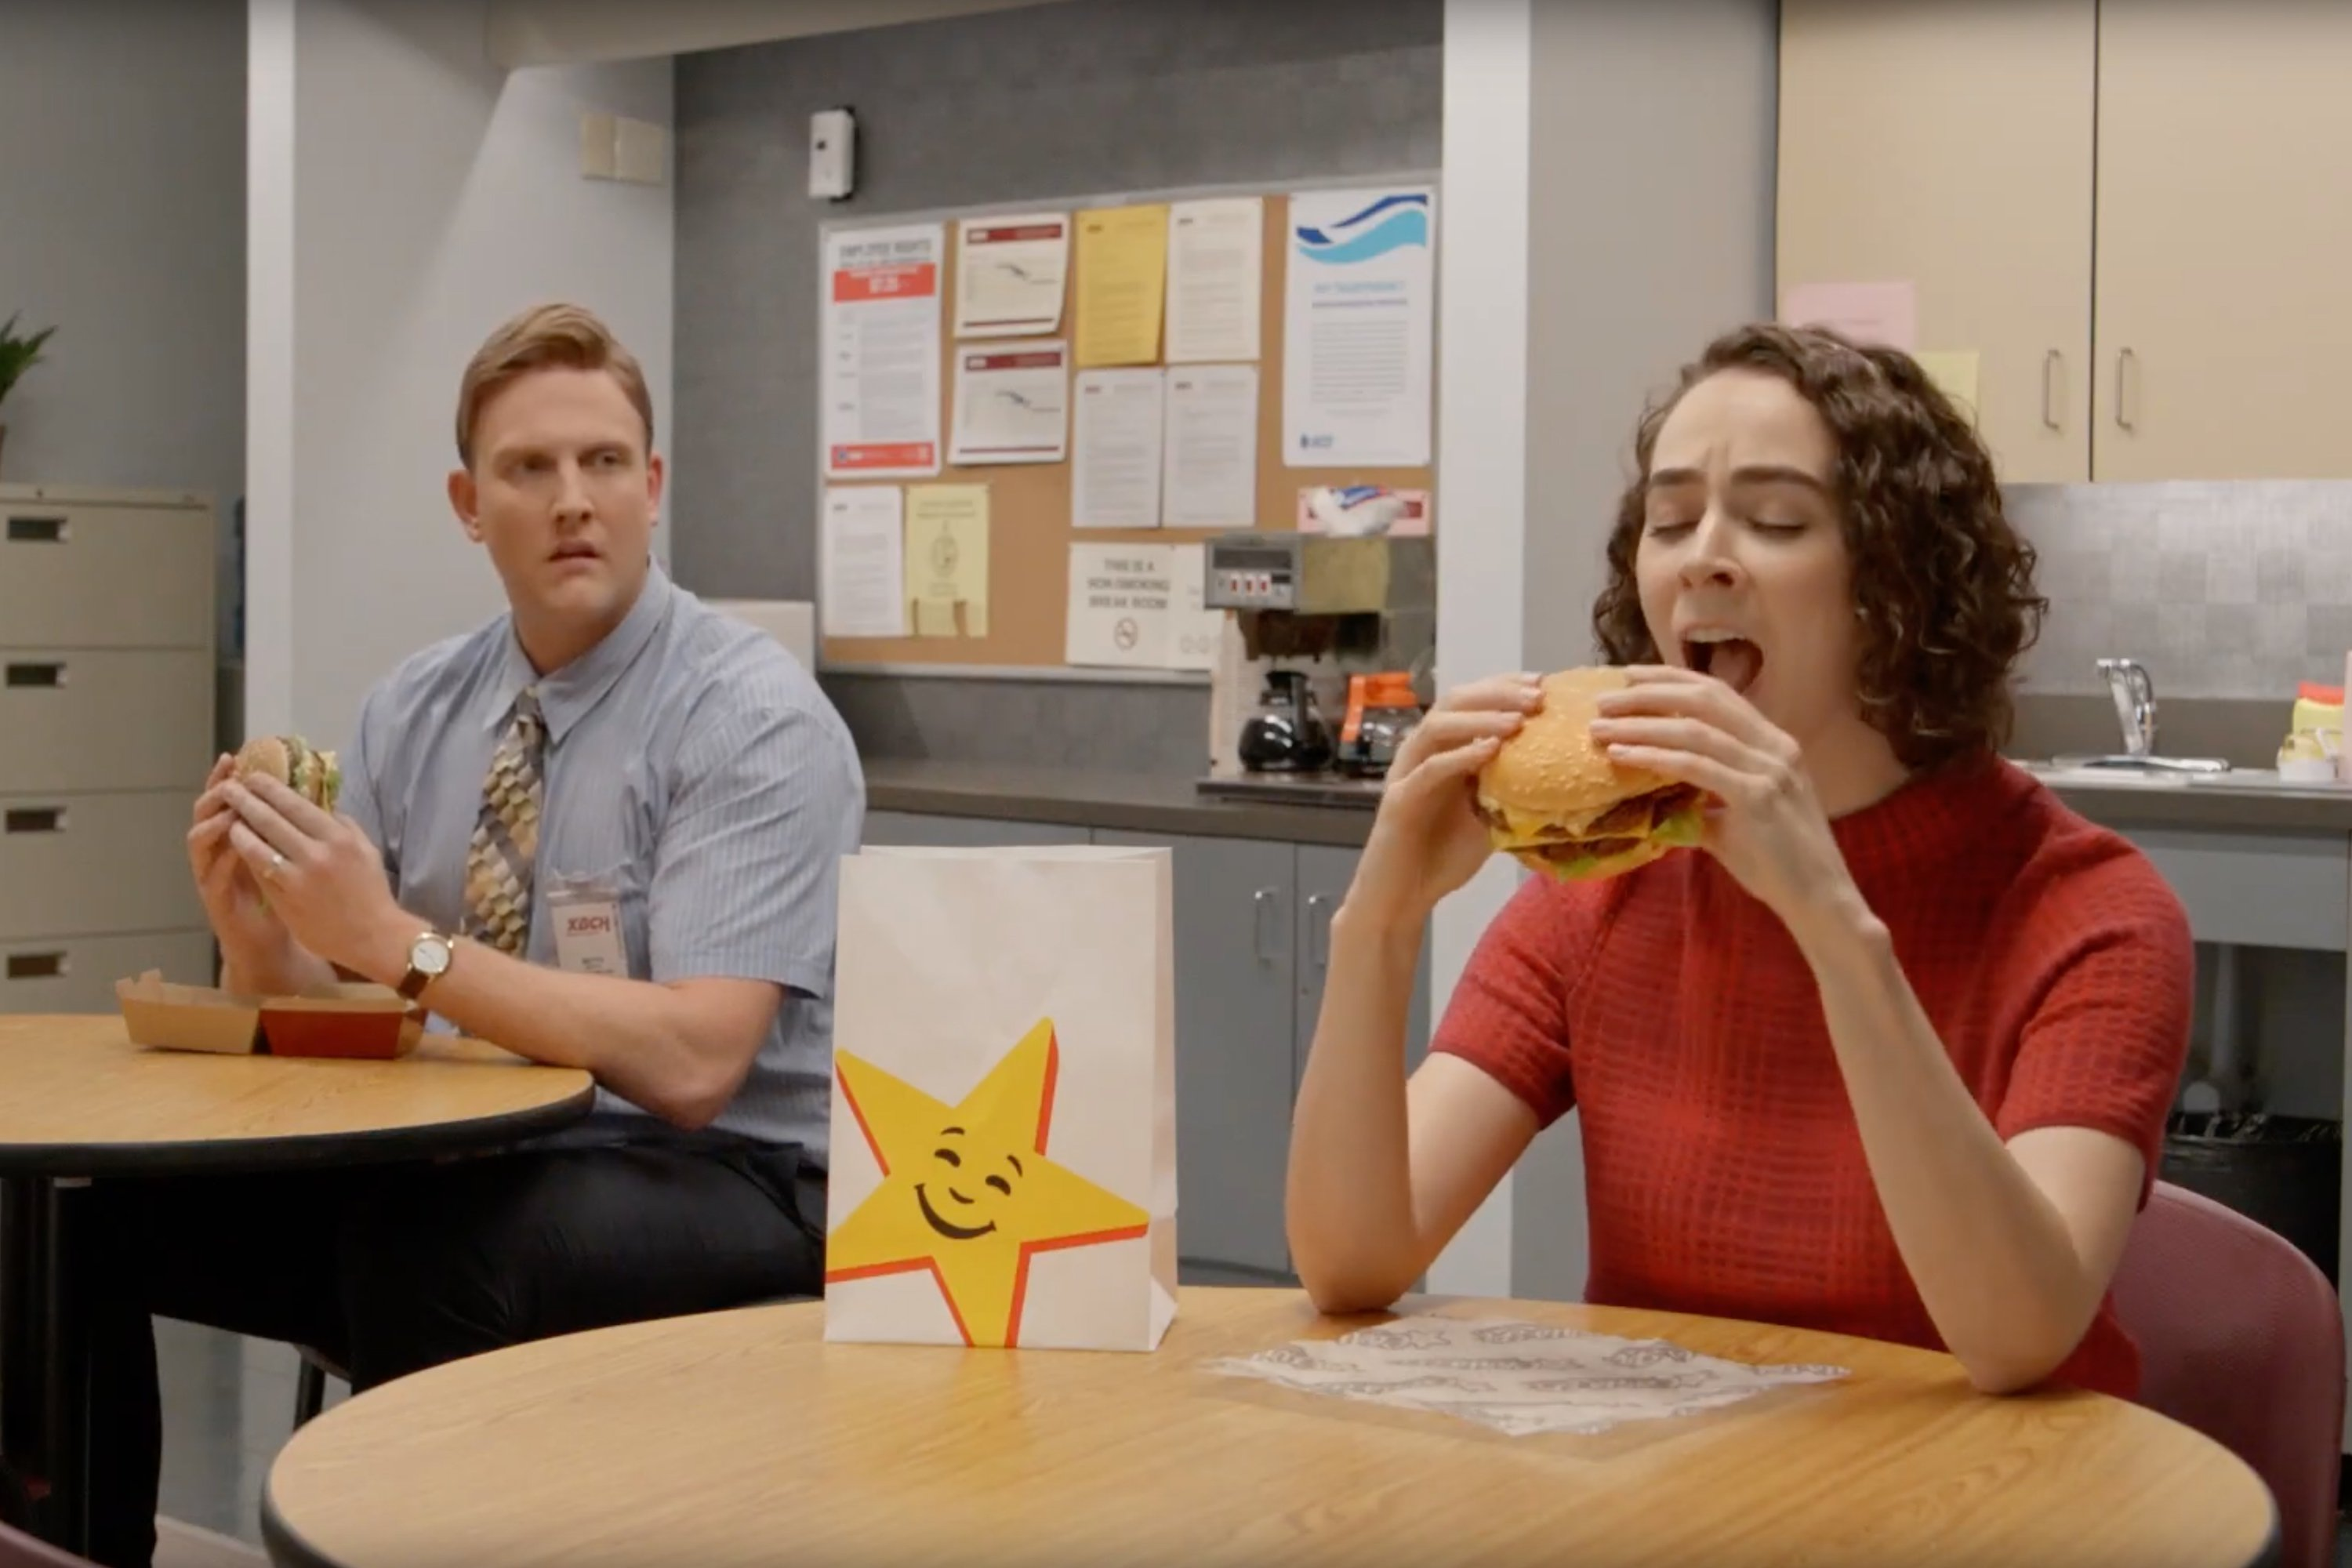 CKE's new chief brand officer brings back 72andSunny to work on Carl's Jr. and Hardee's